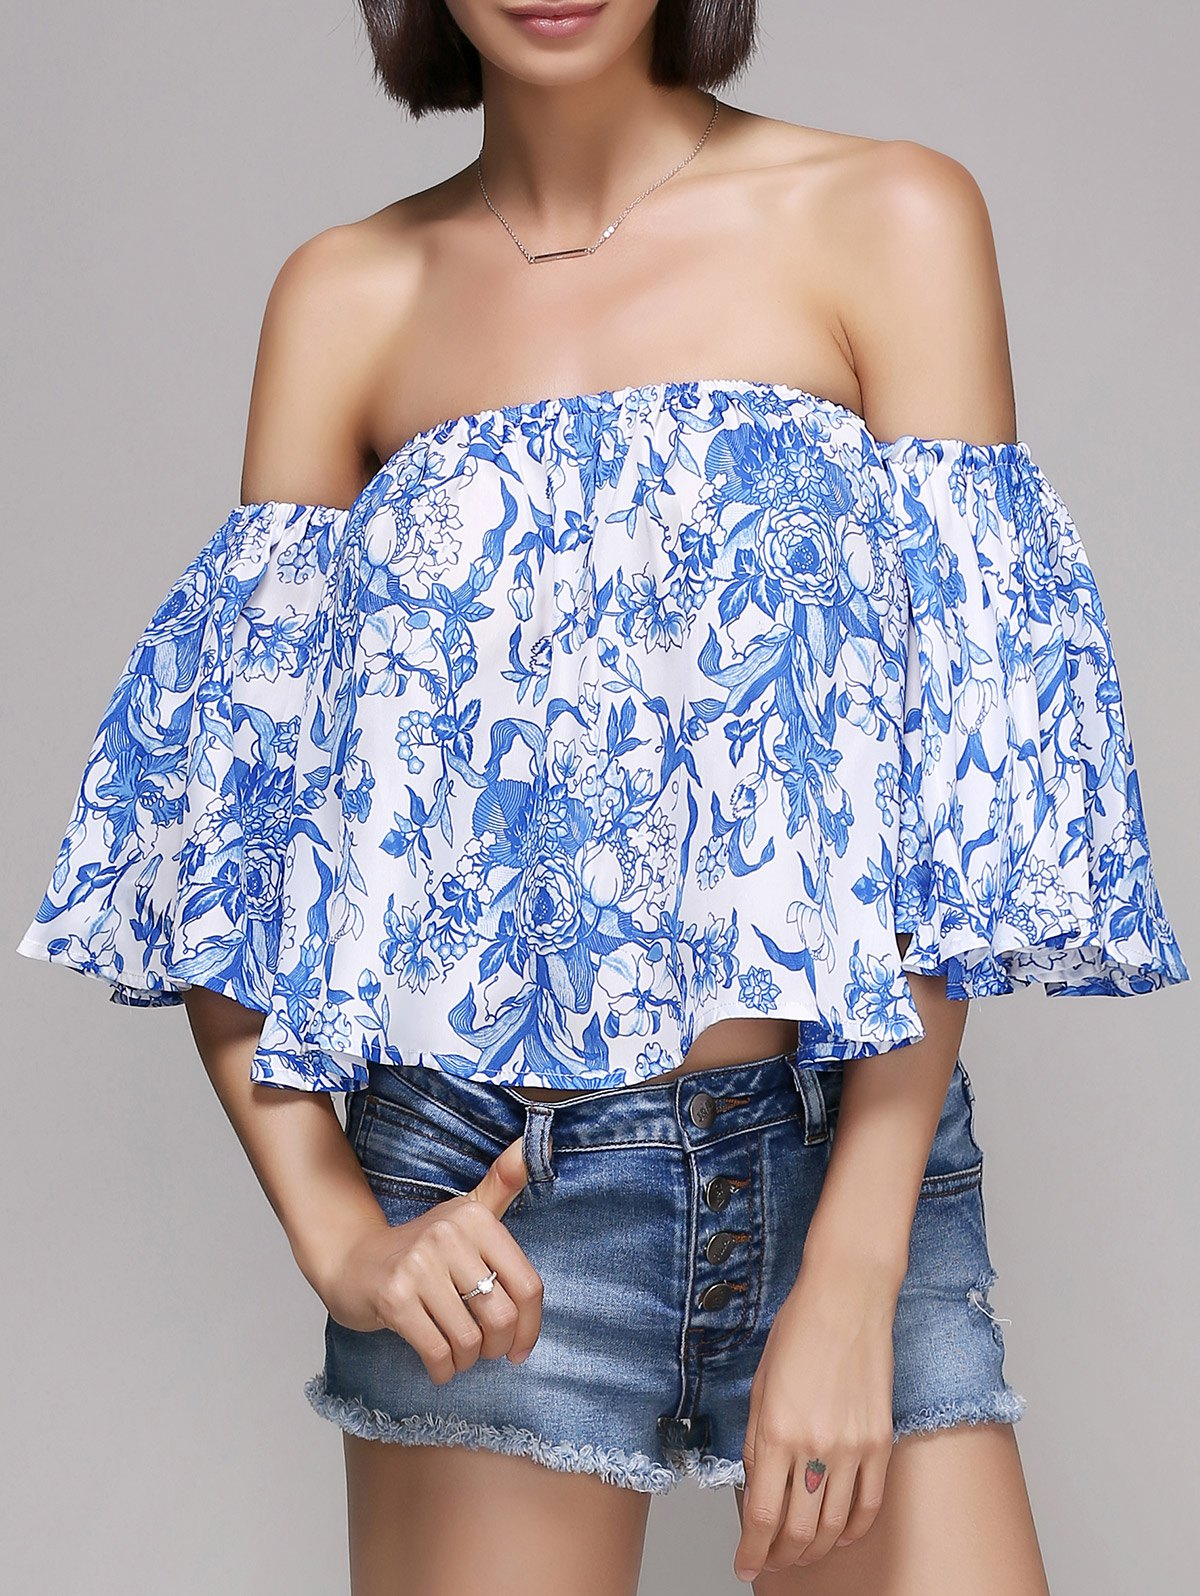 Stylish Off The Shoulder Ruffle Print Blouse For Women - BLUE/WHITE L